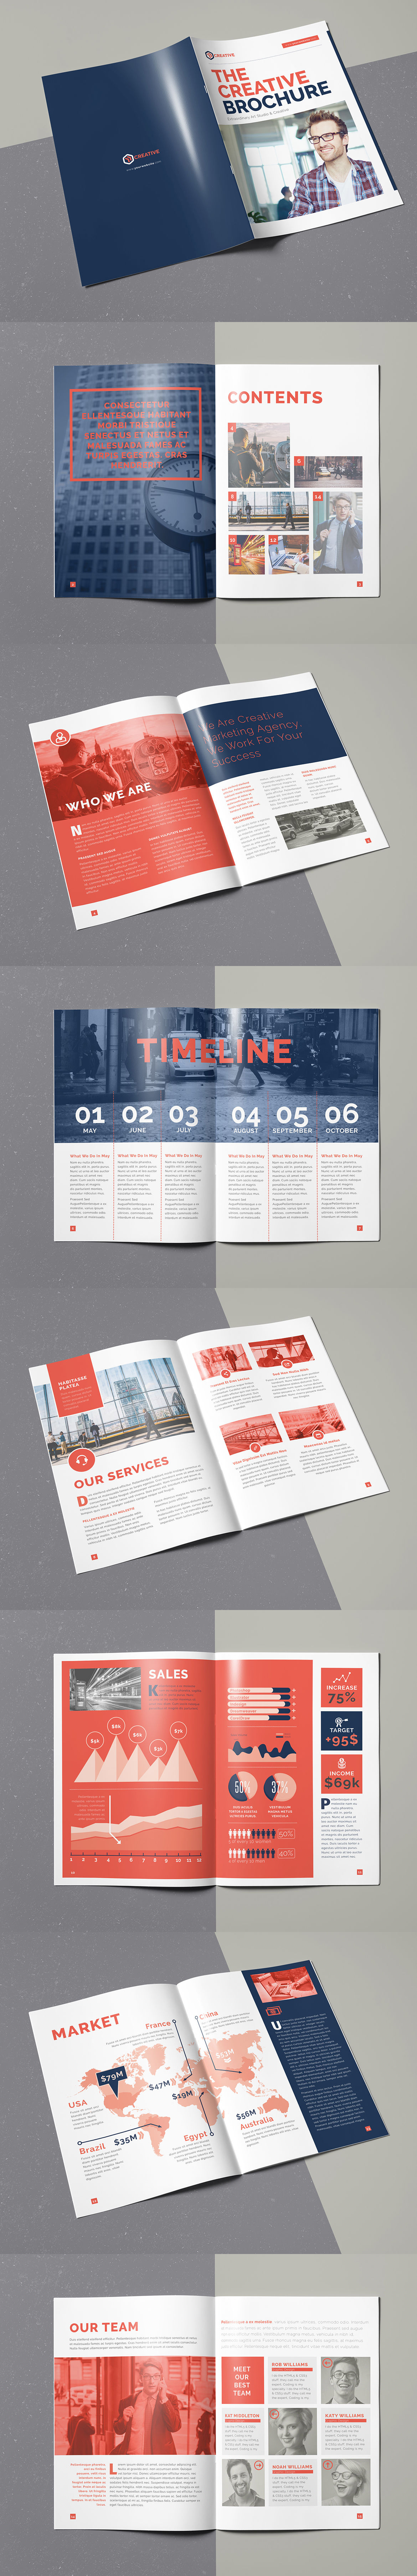 The Creative Brochure Template InDesign INDD - 16 Pages | drinks ...